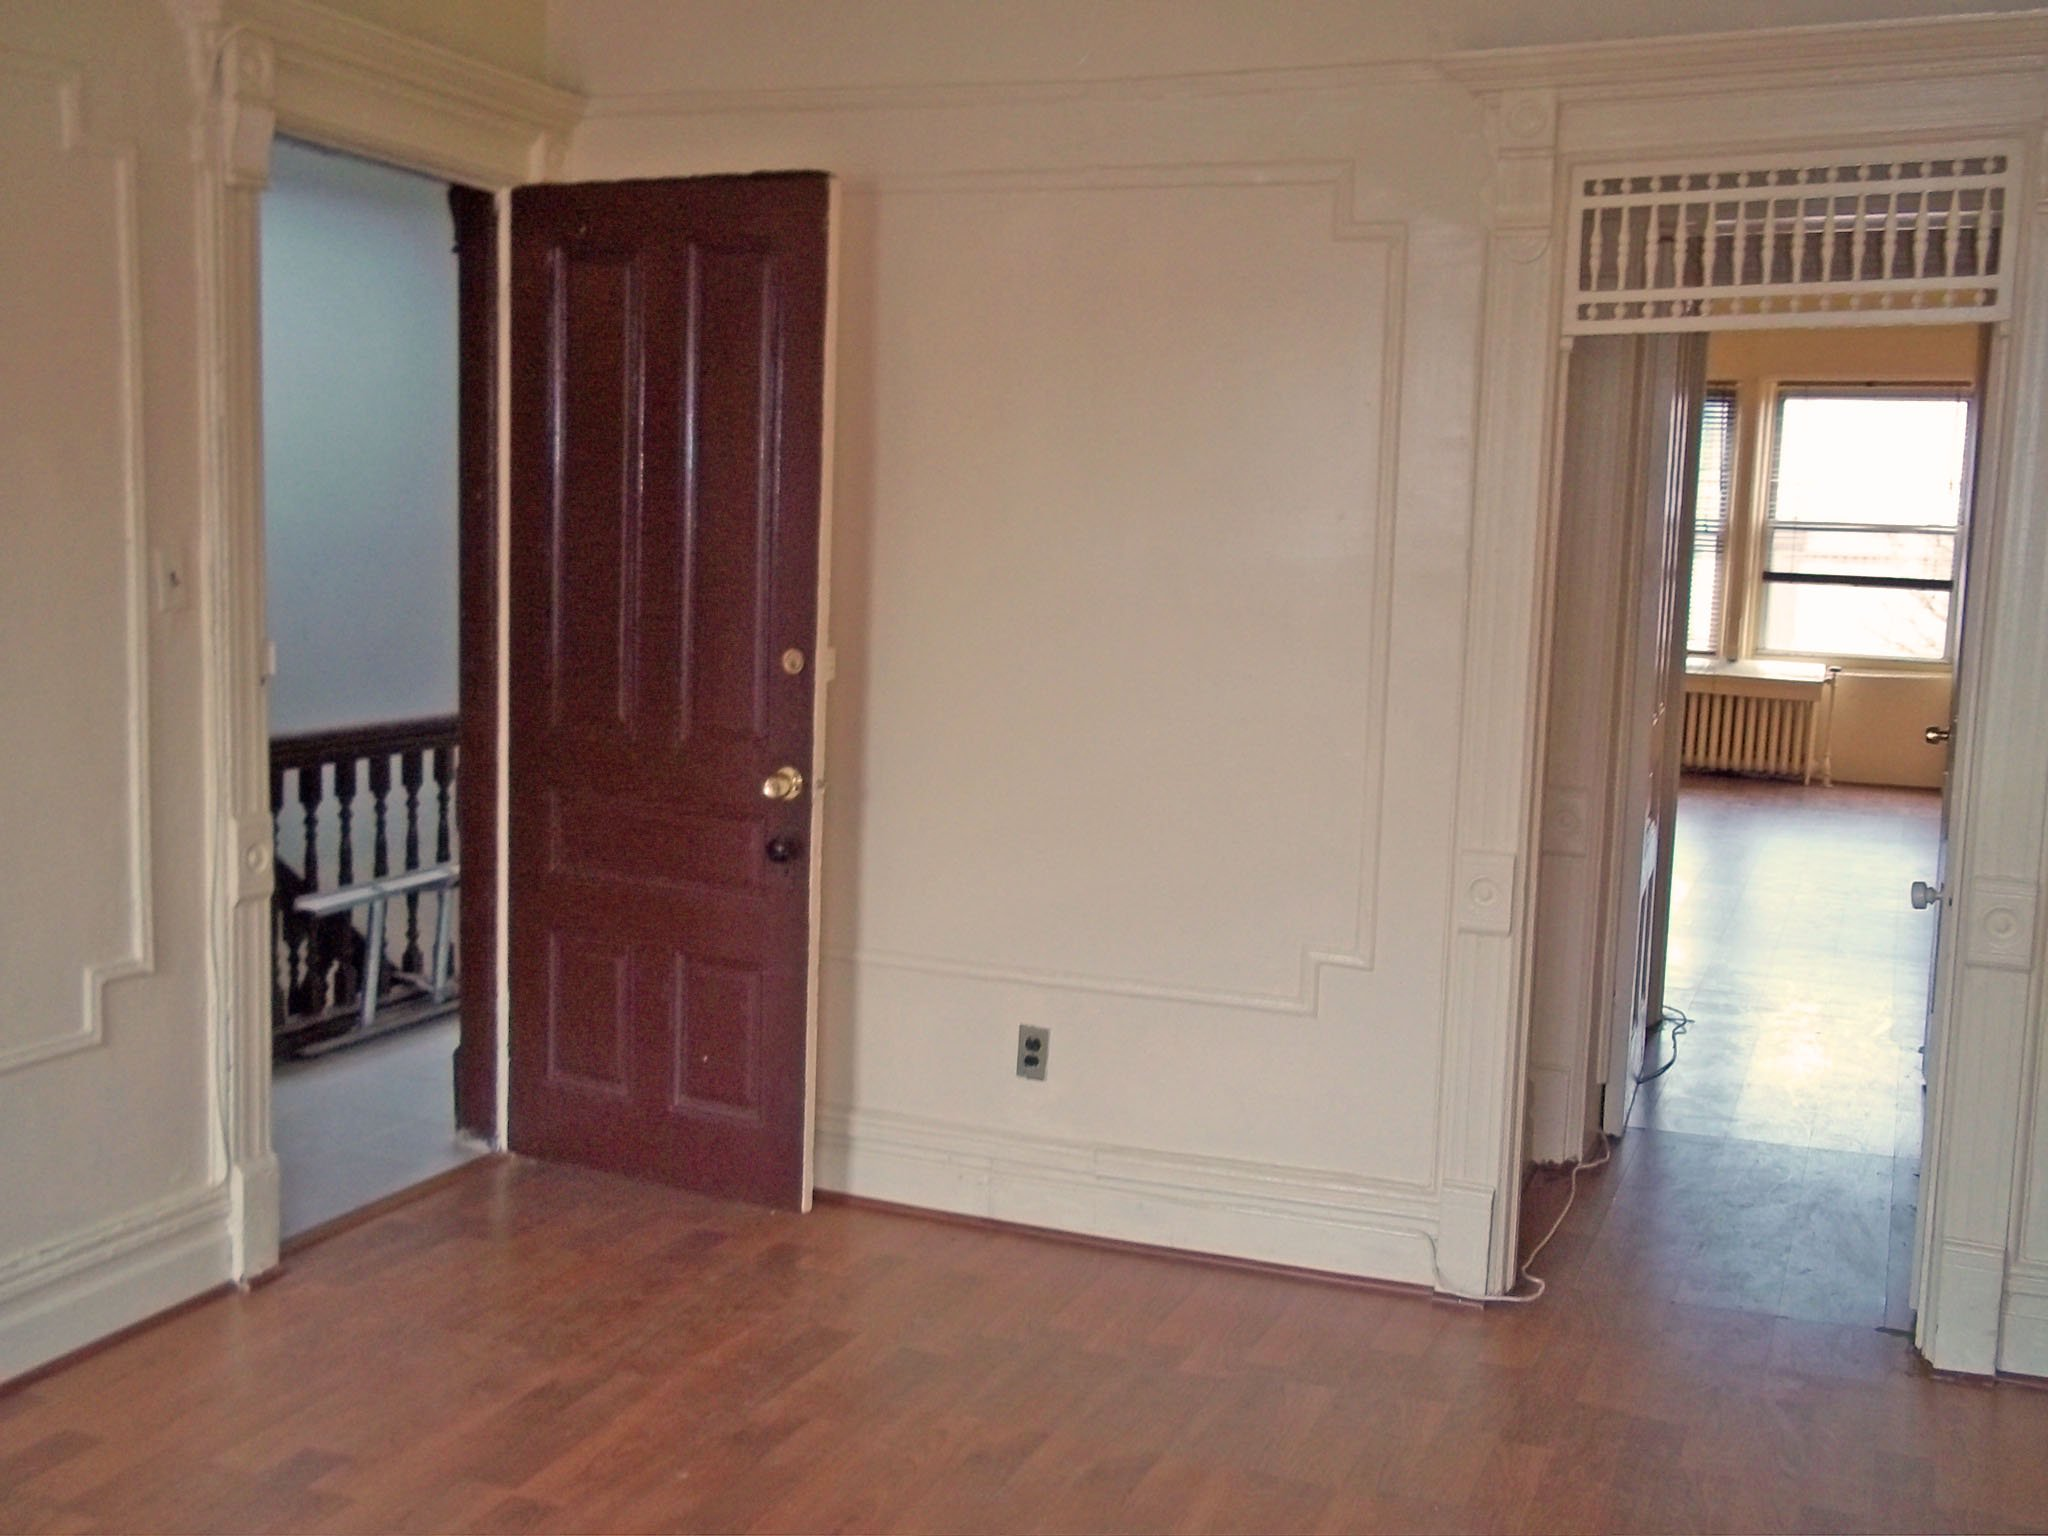 New York Apartment 1 Bedroom Al In Brooklyn Ny 16440